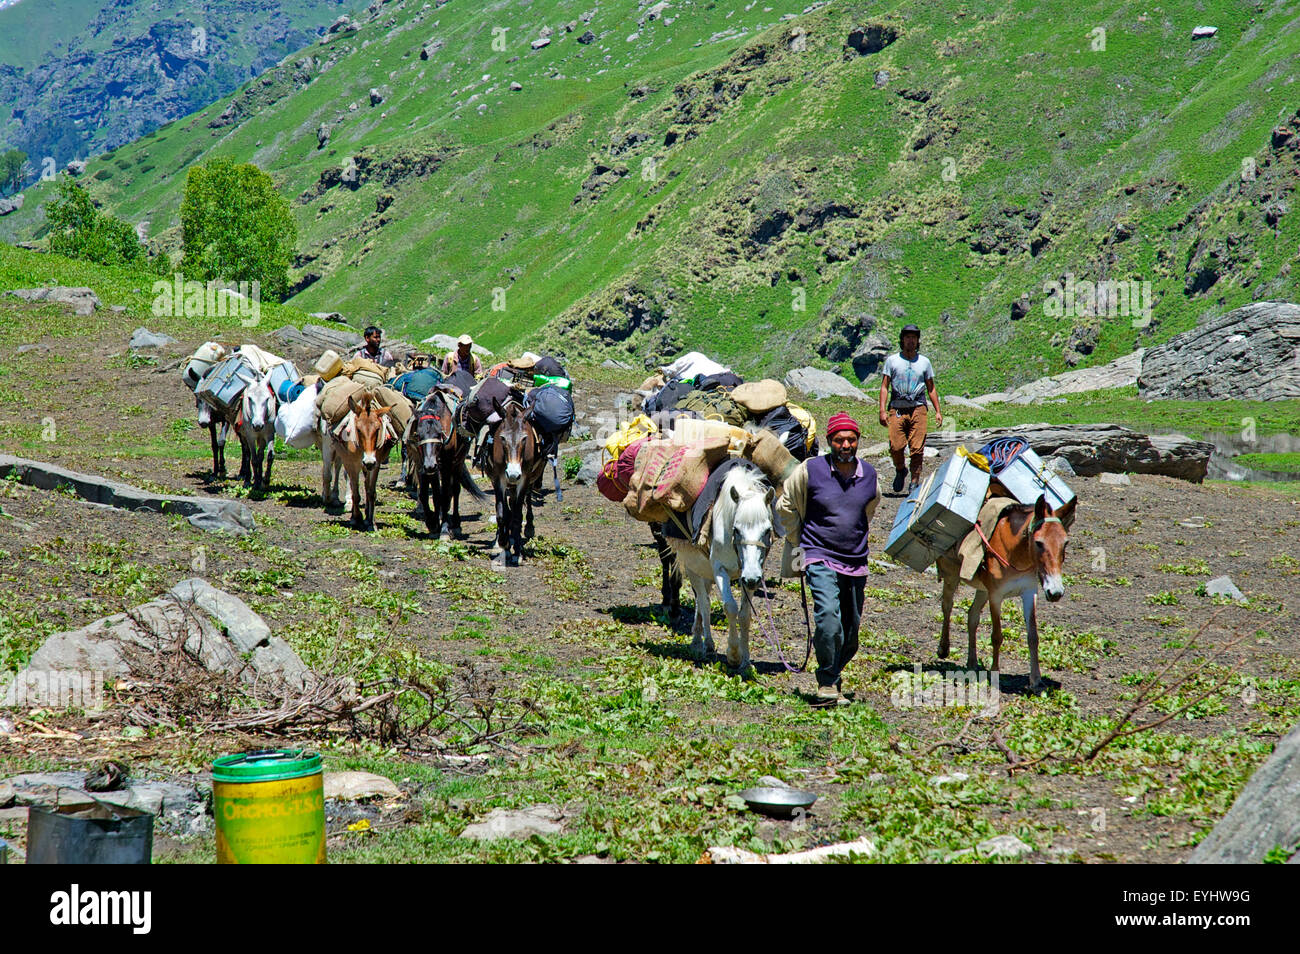 A team of pack mules in the Kulu region of Himachal Pradesh, India - Stock Image